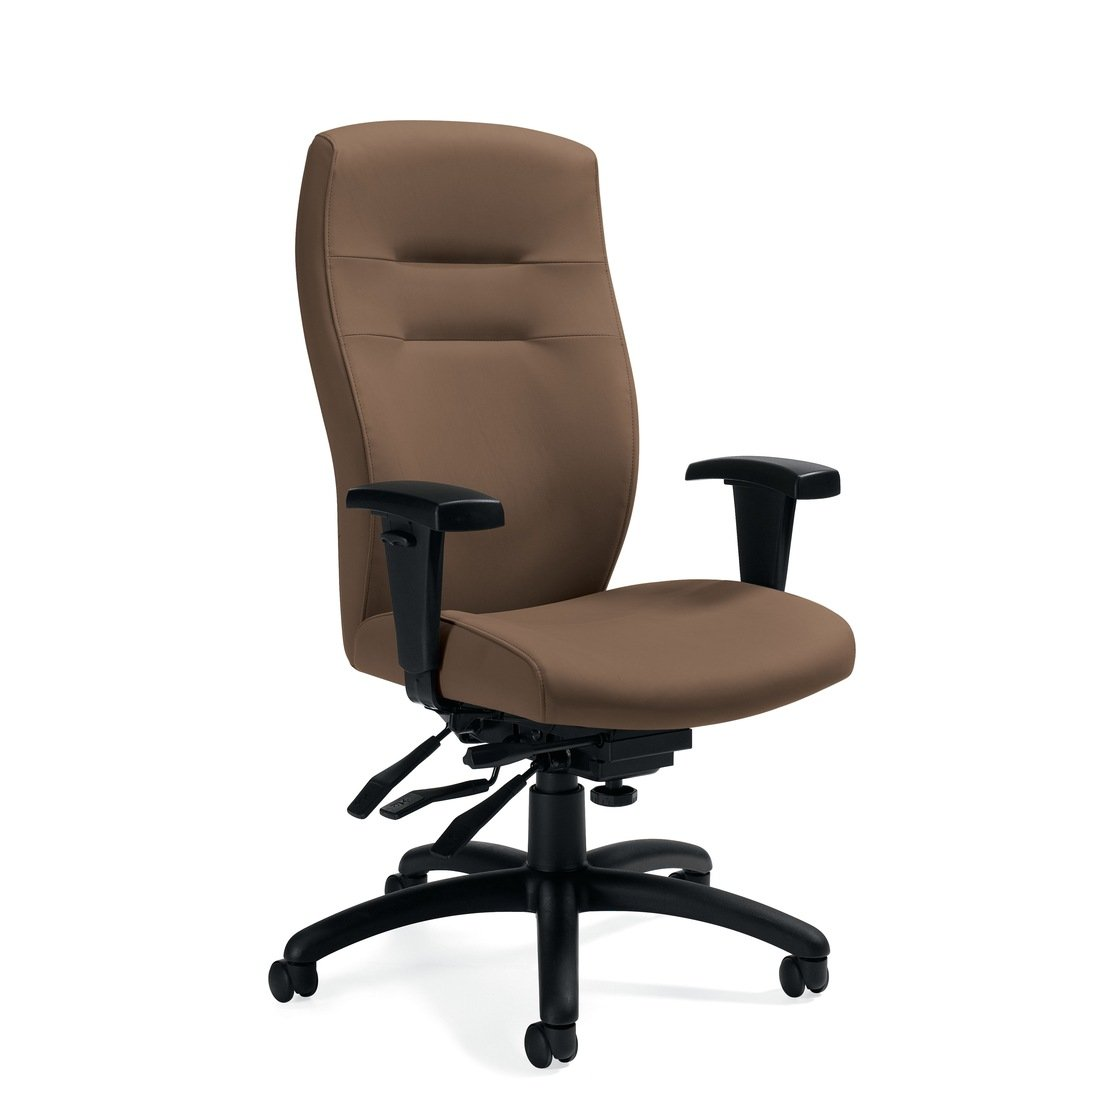 Synopsis high back multi-tilter chair, model 5080LM-3. This chair has been placed on a white background.